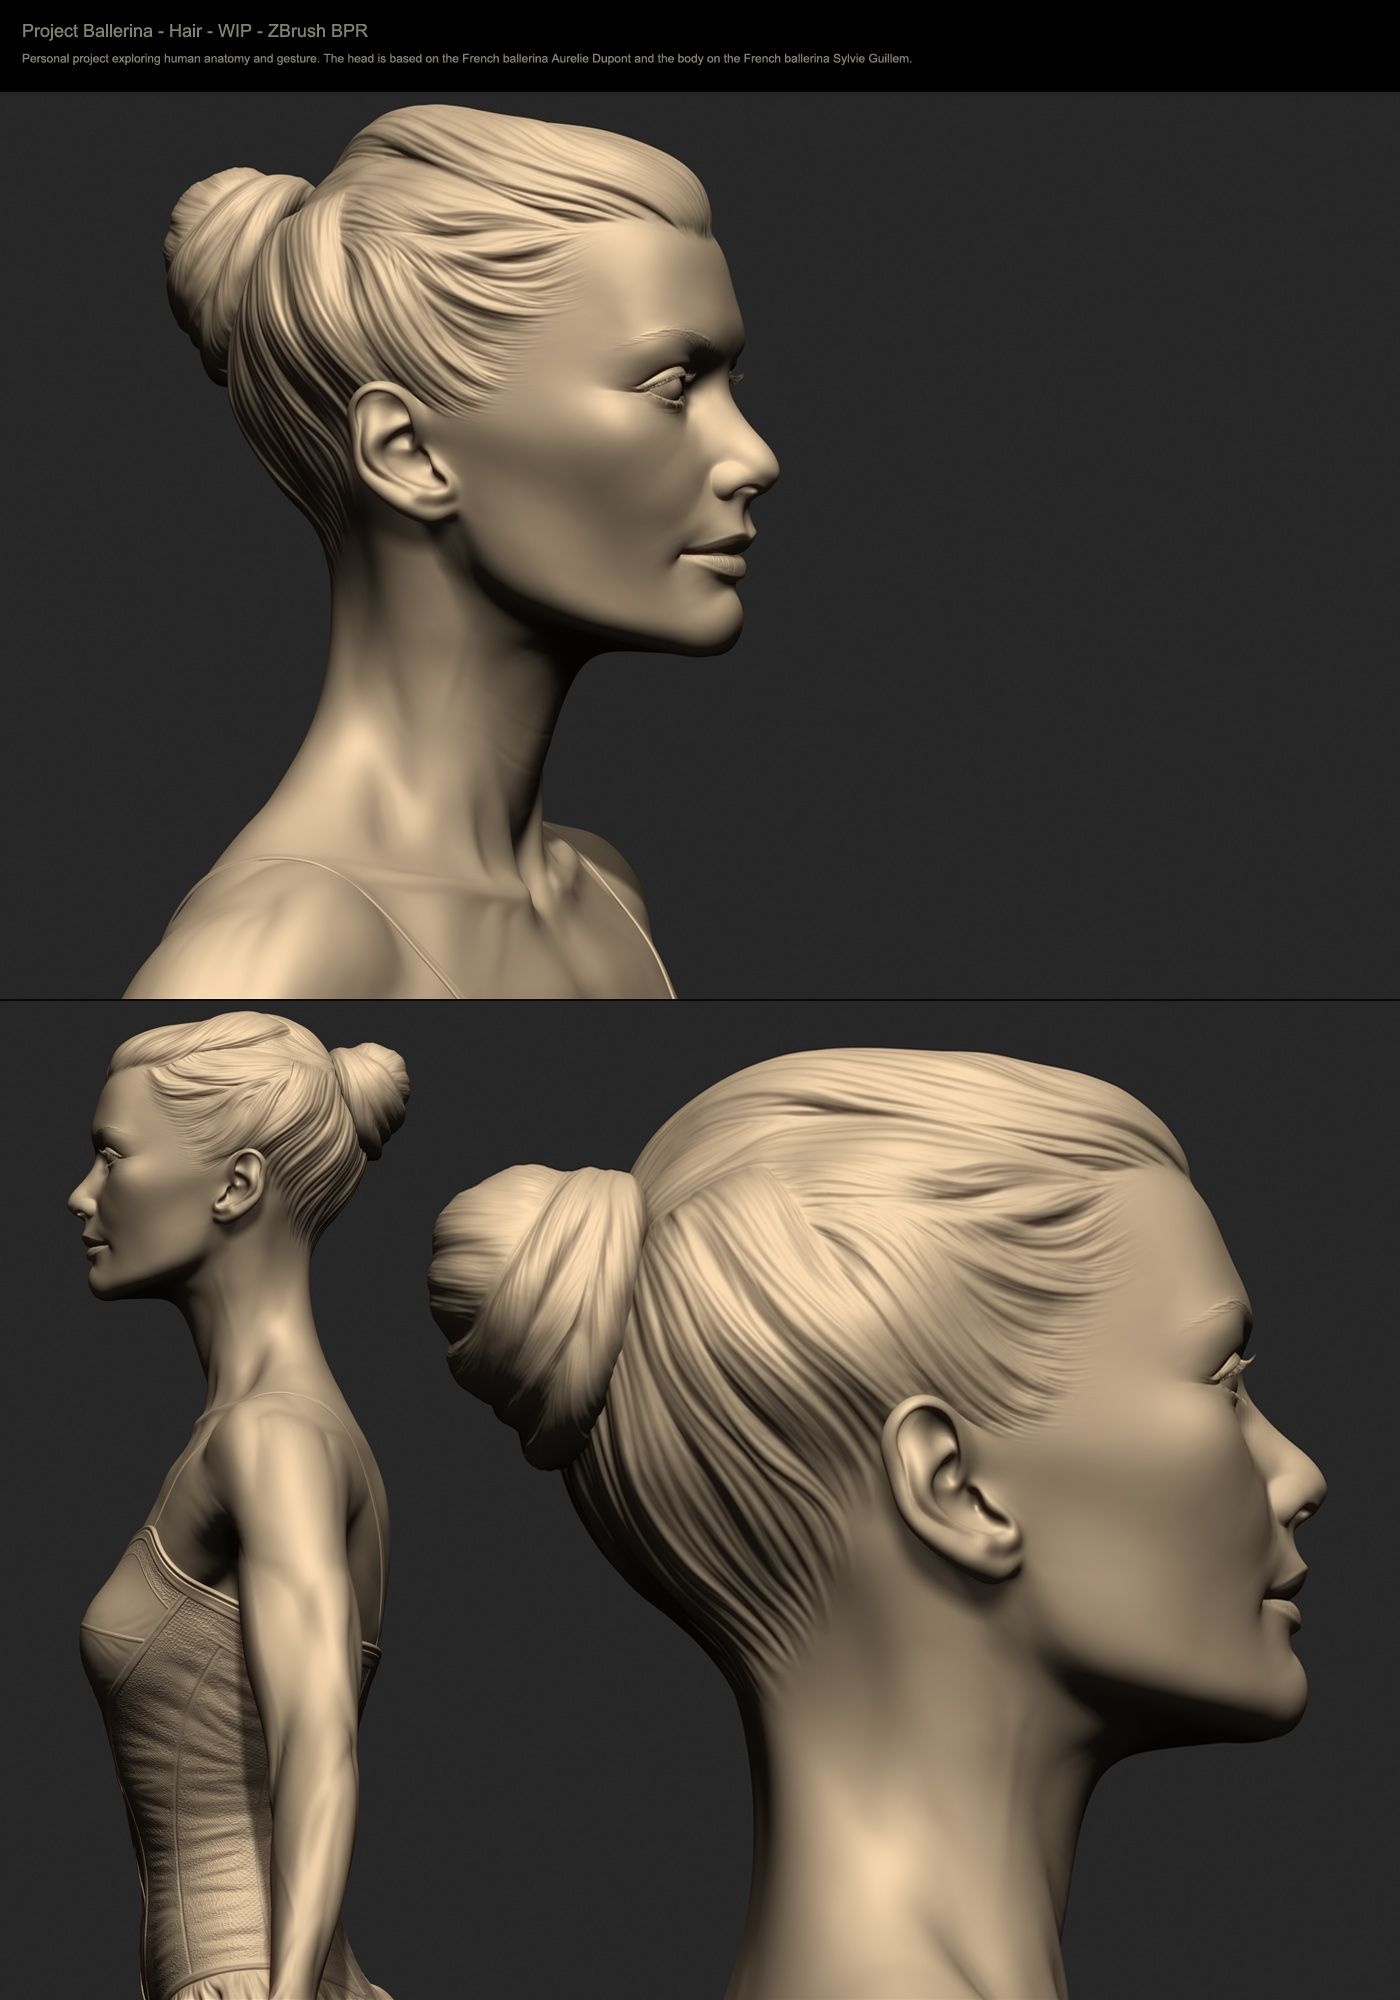 Tians Z Brush work explores human anatomy and gesture in the form of ...